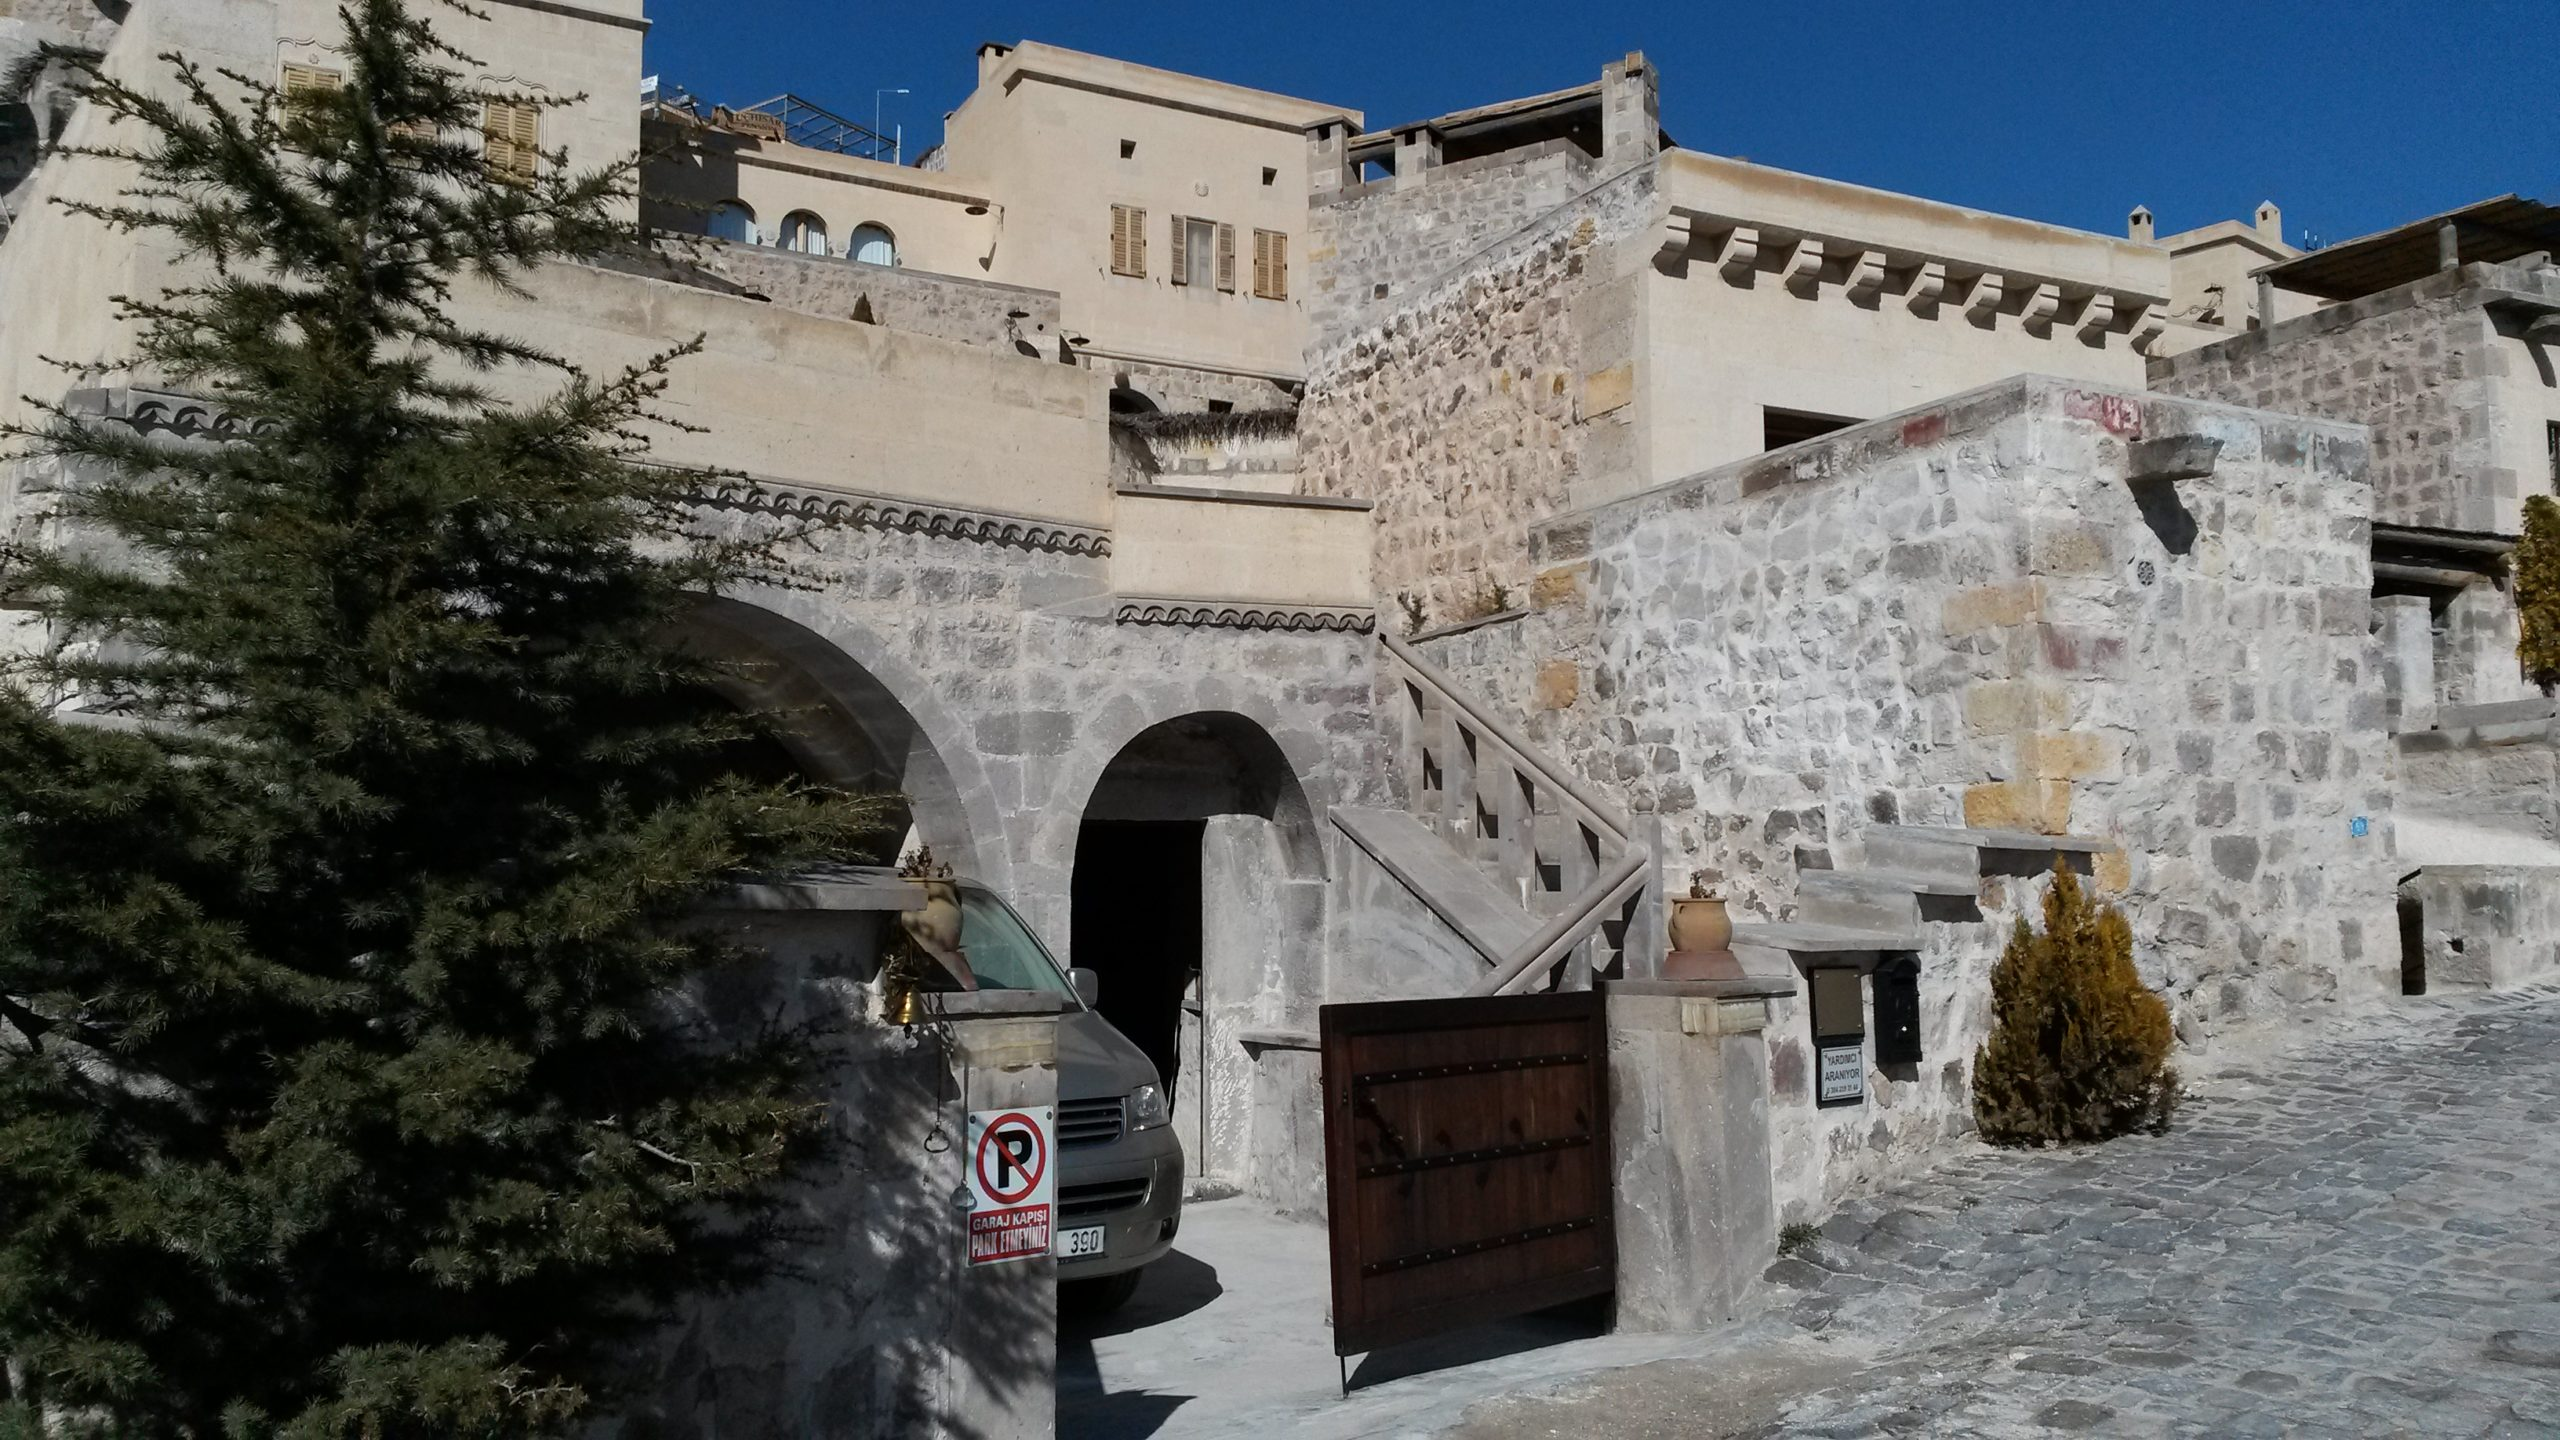 View of the entrance of Cappadocia Lodge in Pigeons valley